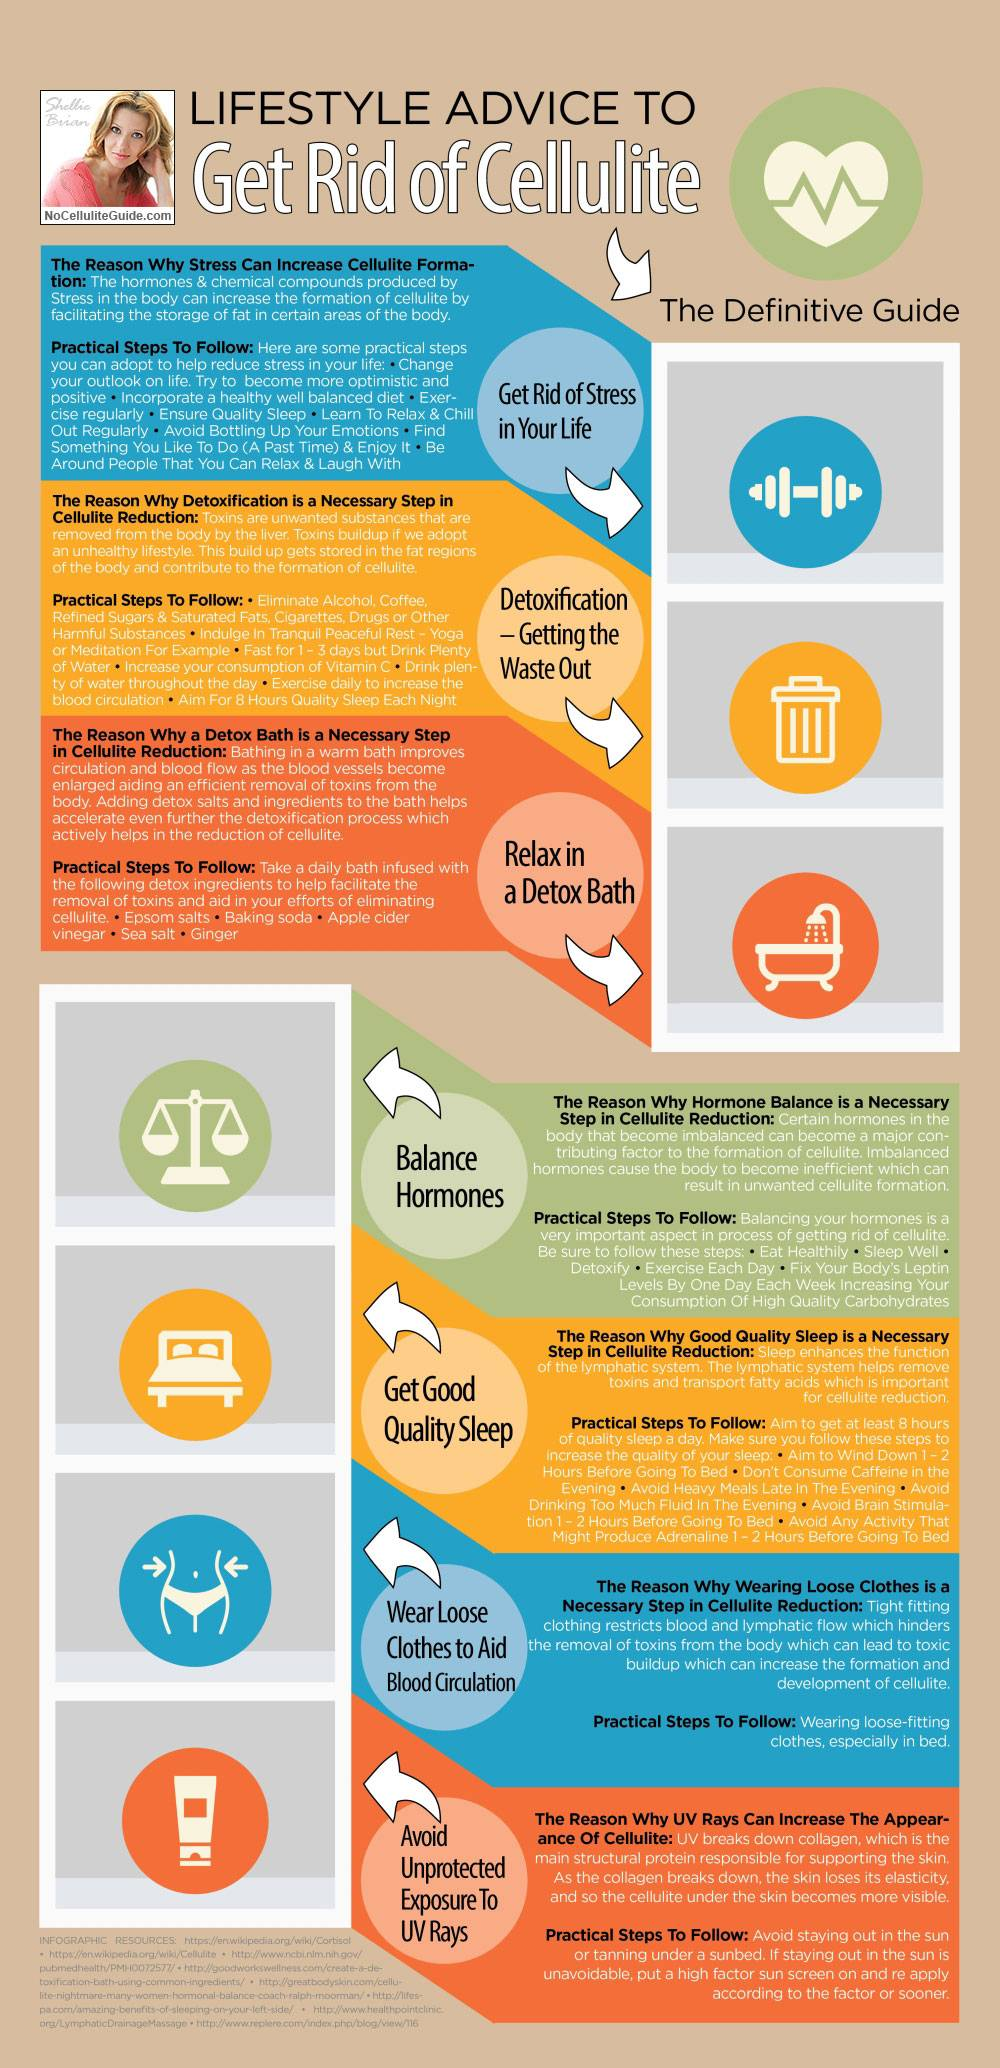 Lifestyle that Gets Rid of Cellulite - The Definitive Guide (Infographic)